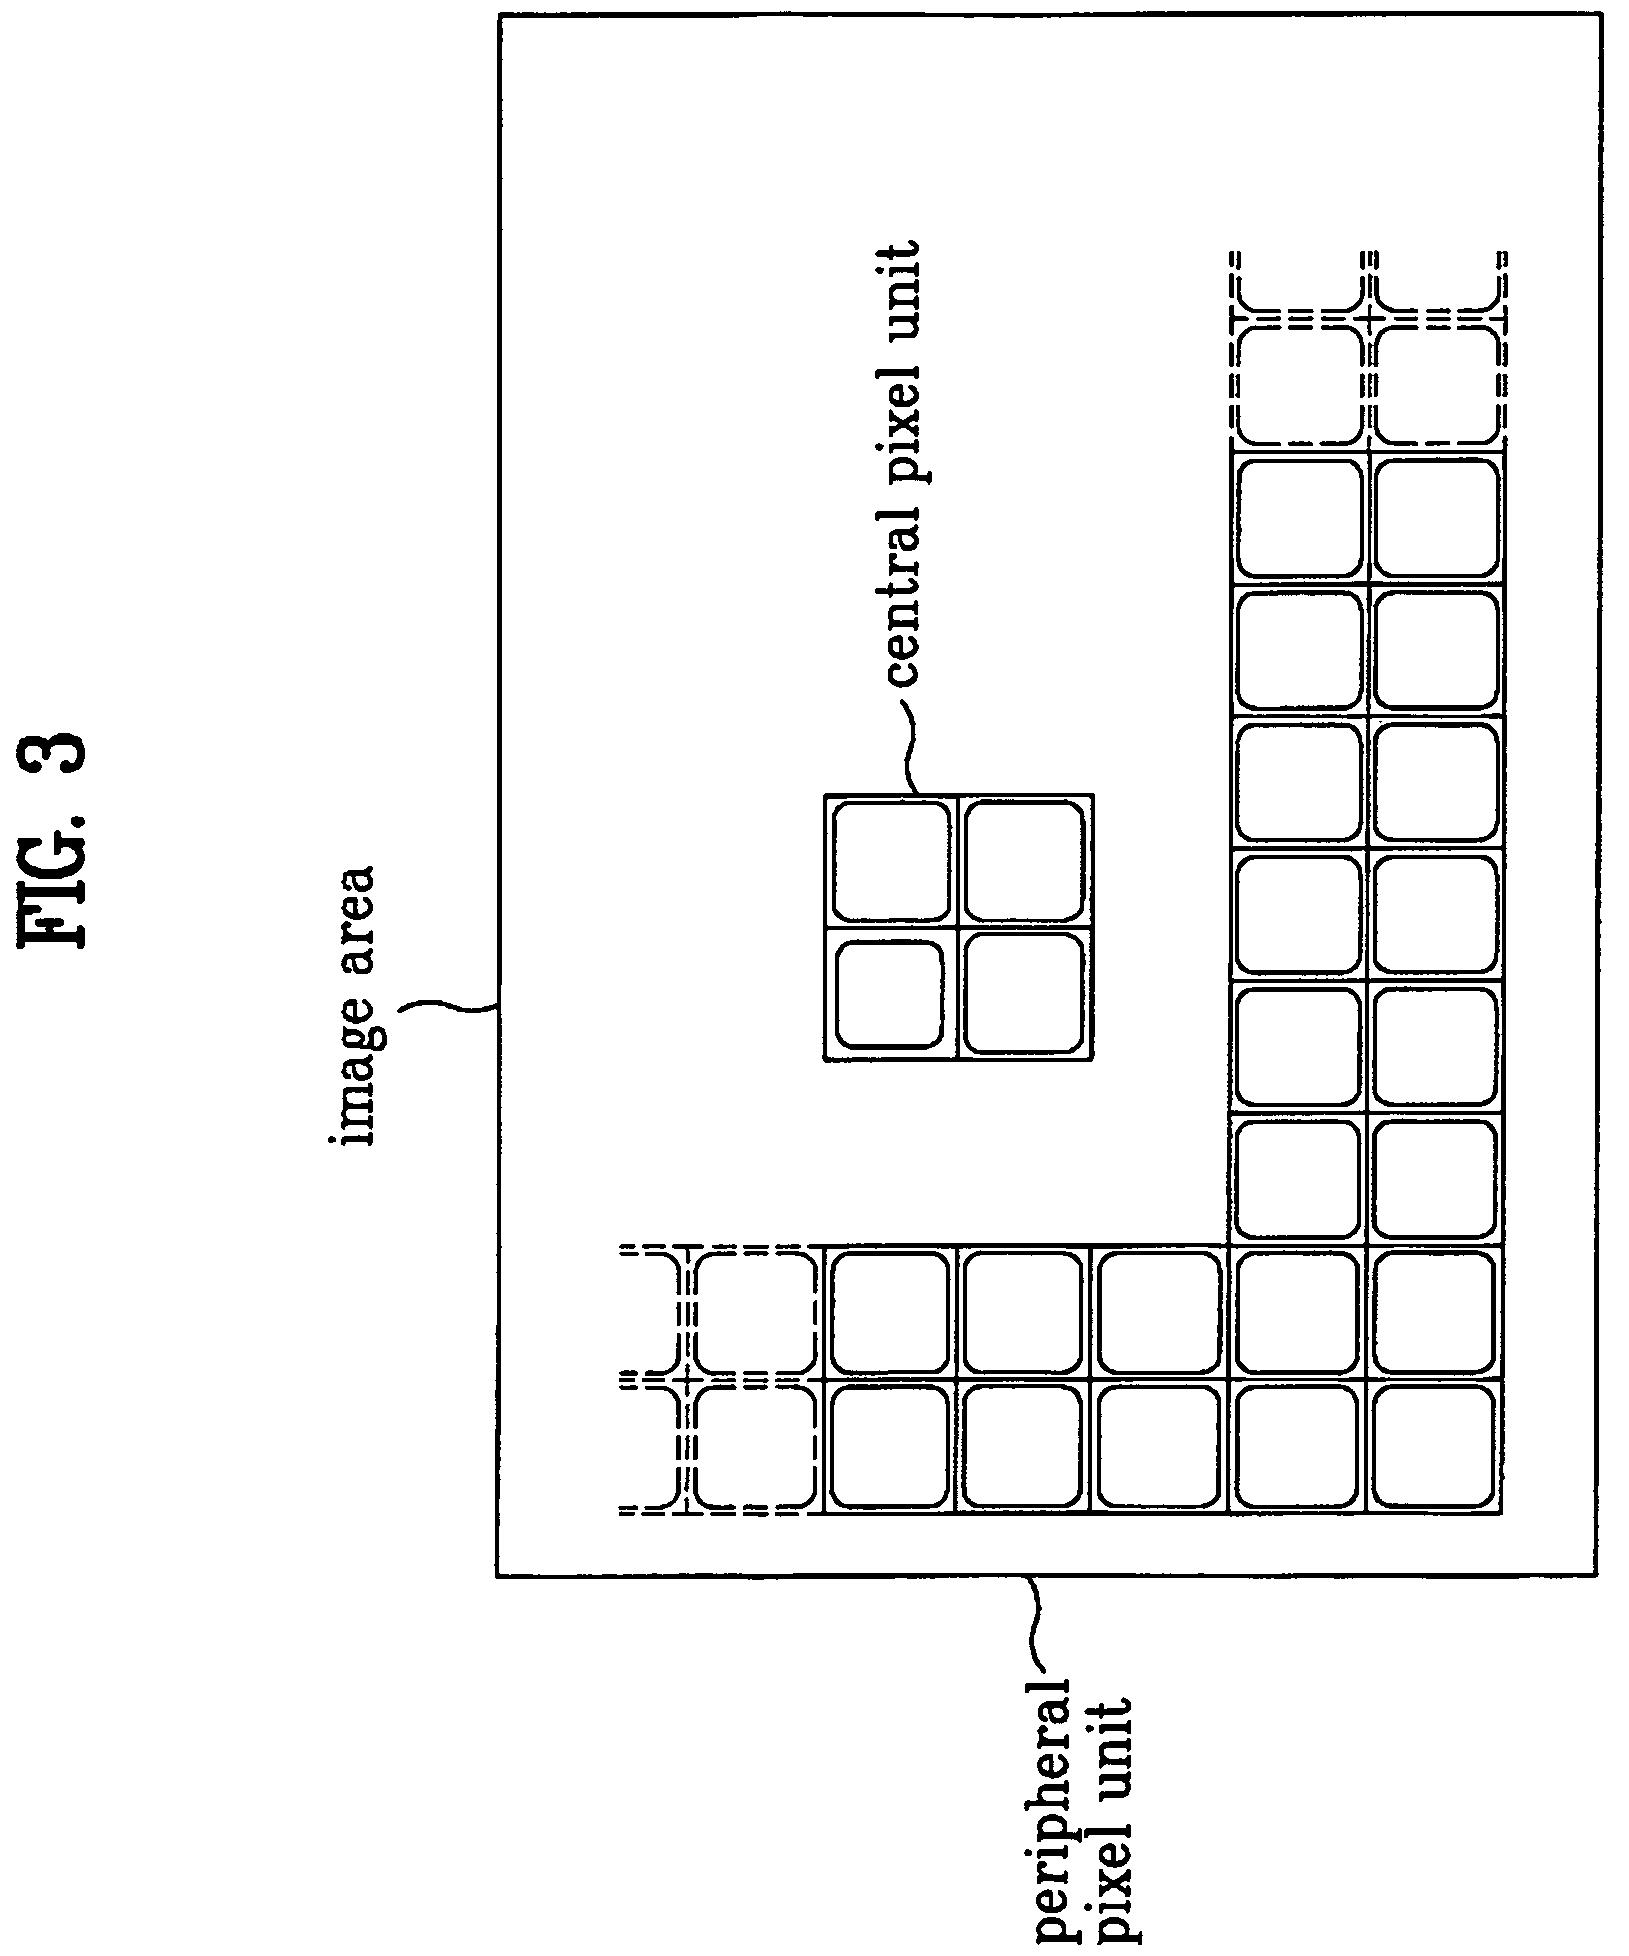 Patent Us7626157 Image Sensor Including Microlens Having Sizes Voltage Color Comprises An Array Ofphotodiodes Behind Drawing